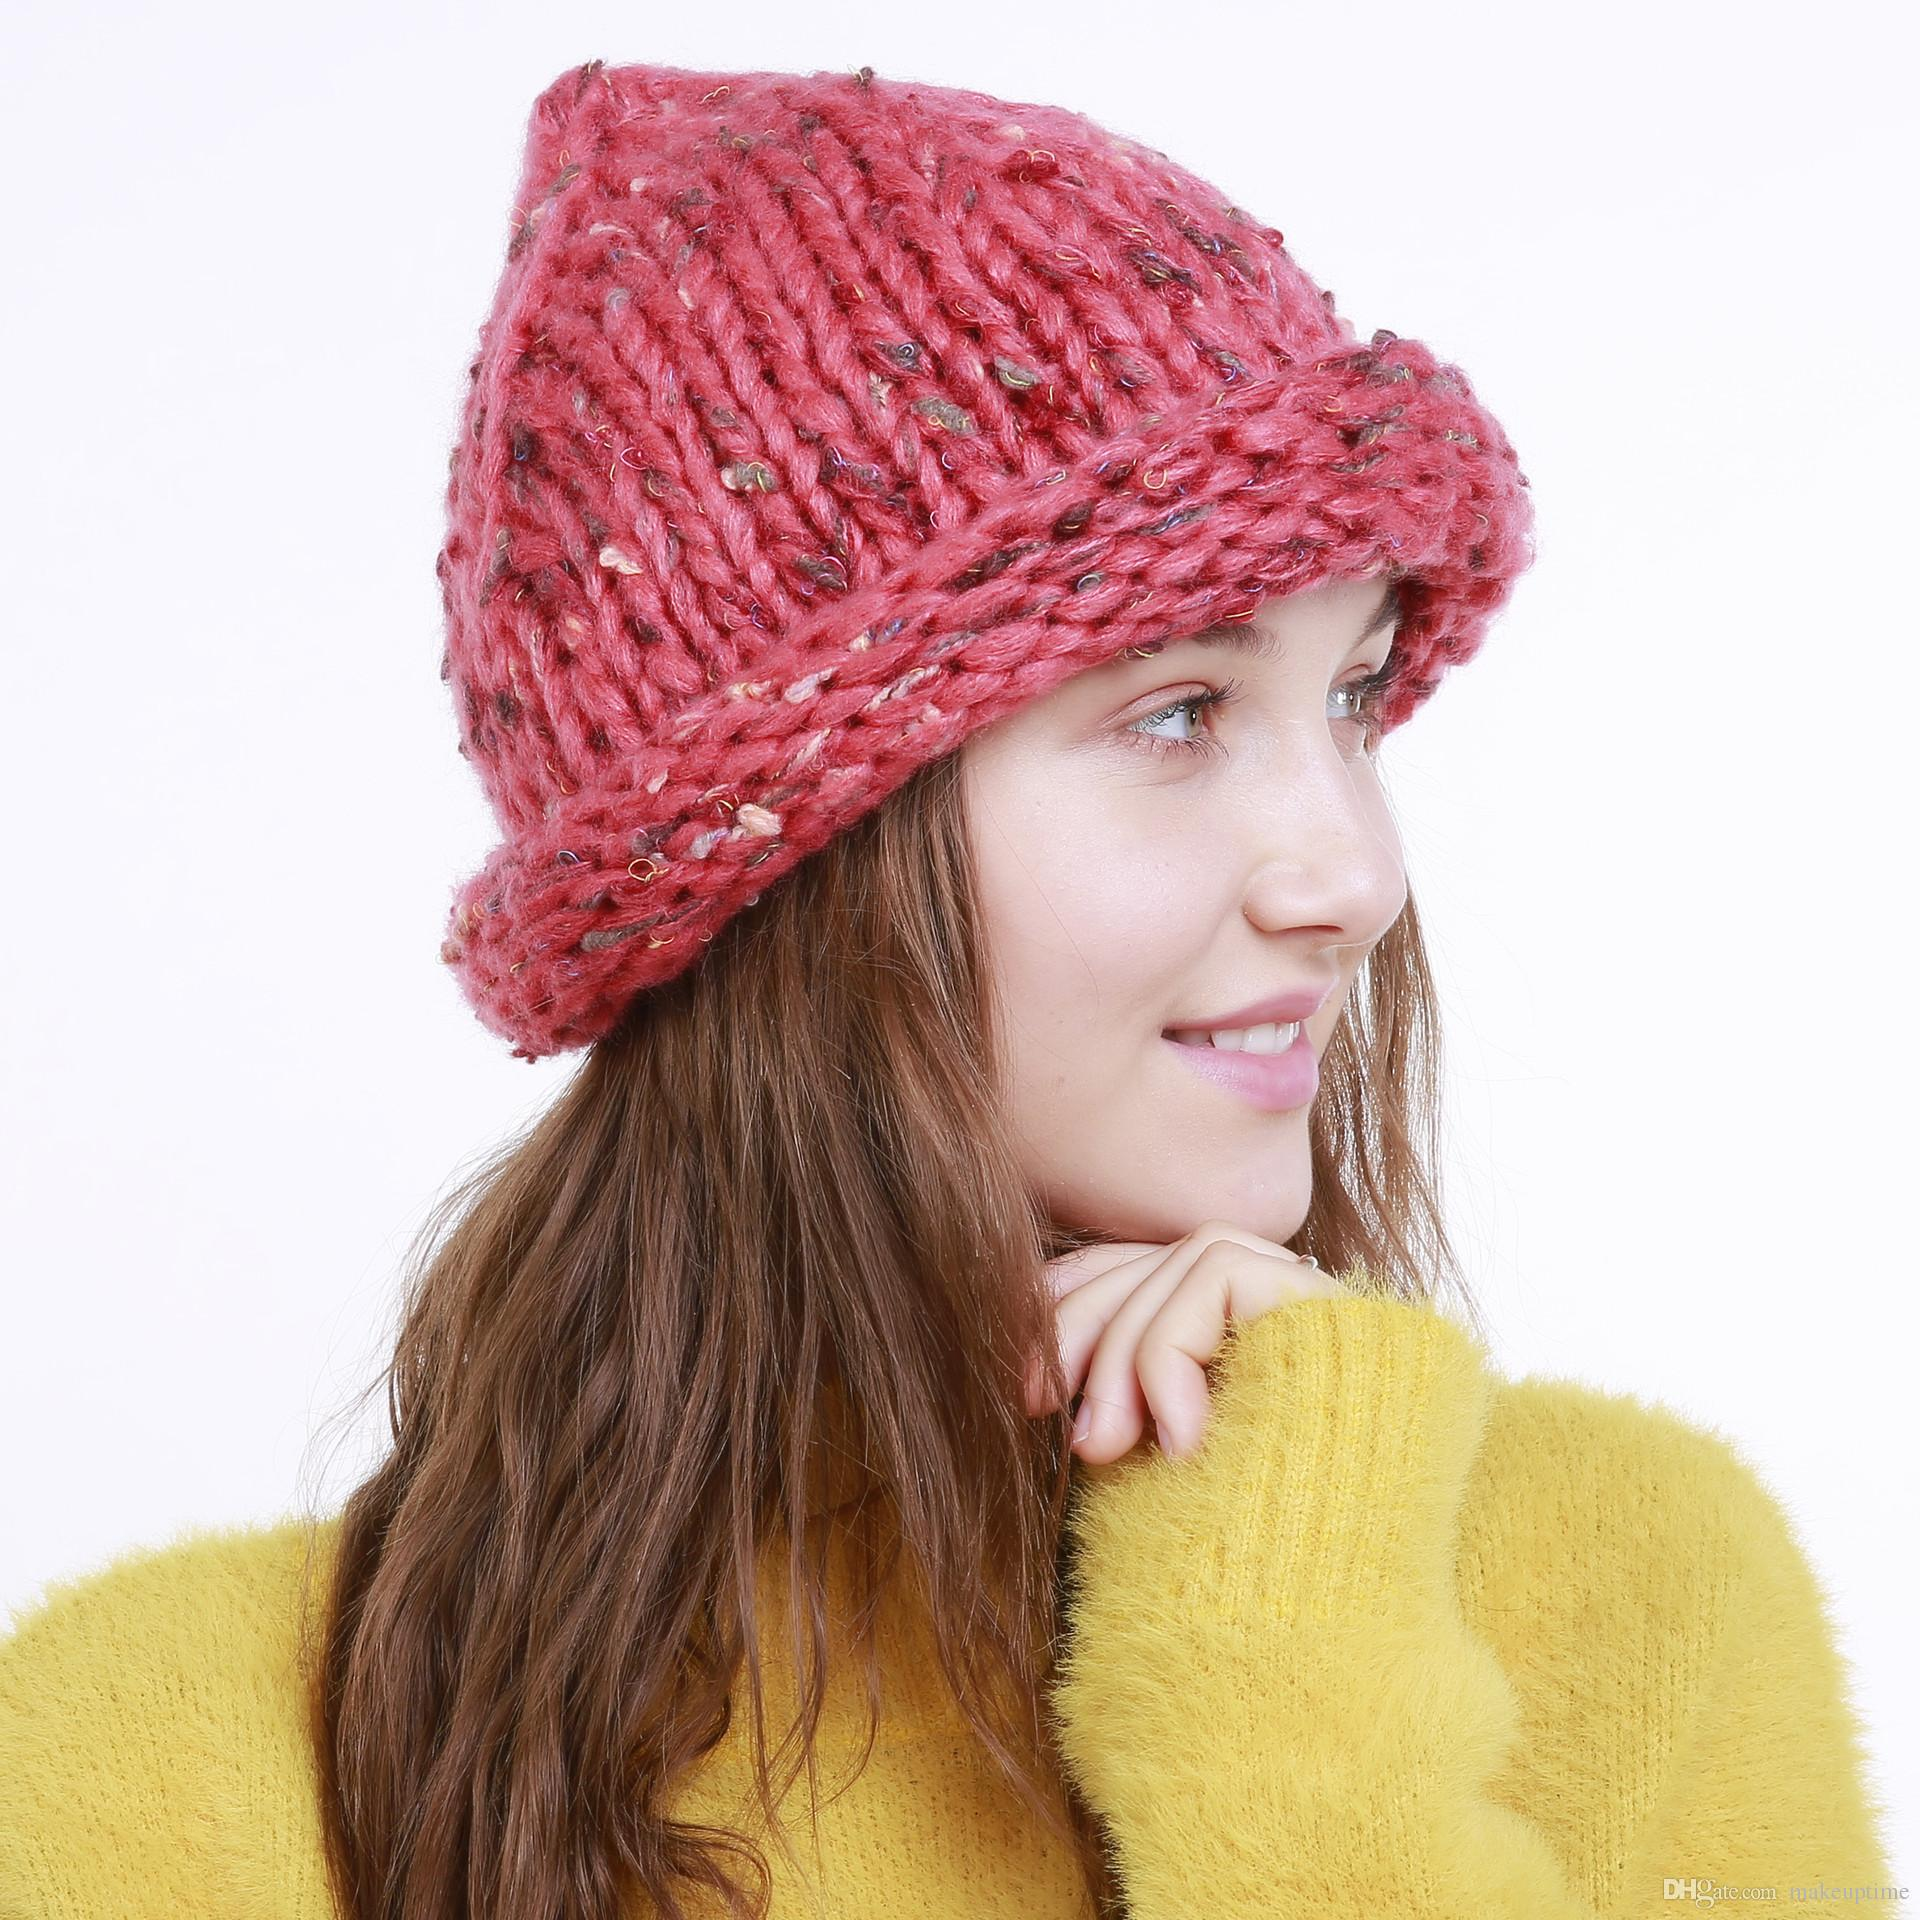 11b1ae62 Hot Sale Popular New Autumn And Winter Women'S Thick Wool Hat Knit Hat  Short Brim Hats For Summer Hats Funny Hats From Makeuptime, $18.1|  DHgate.Com